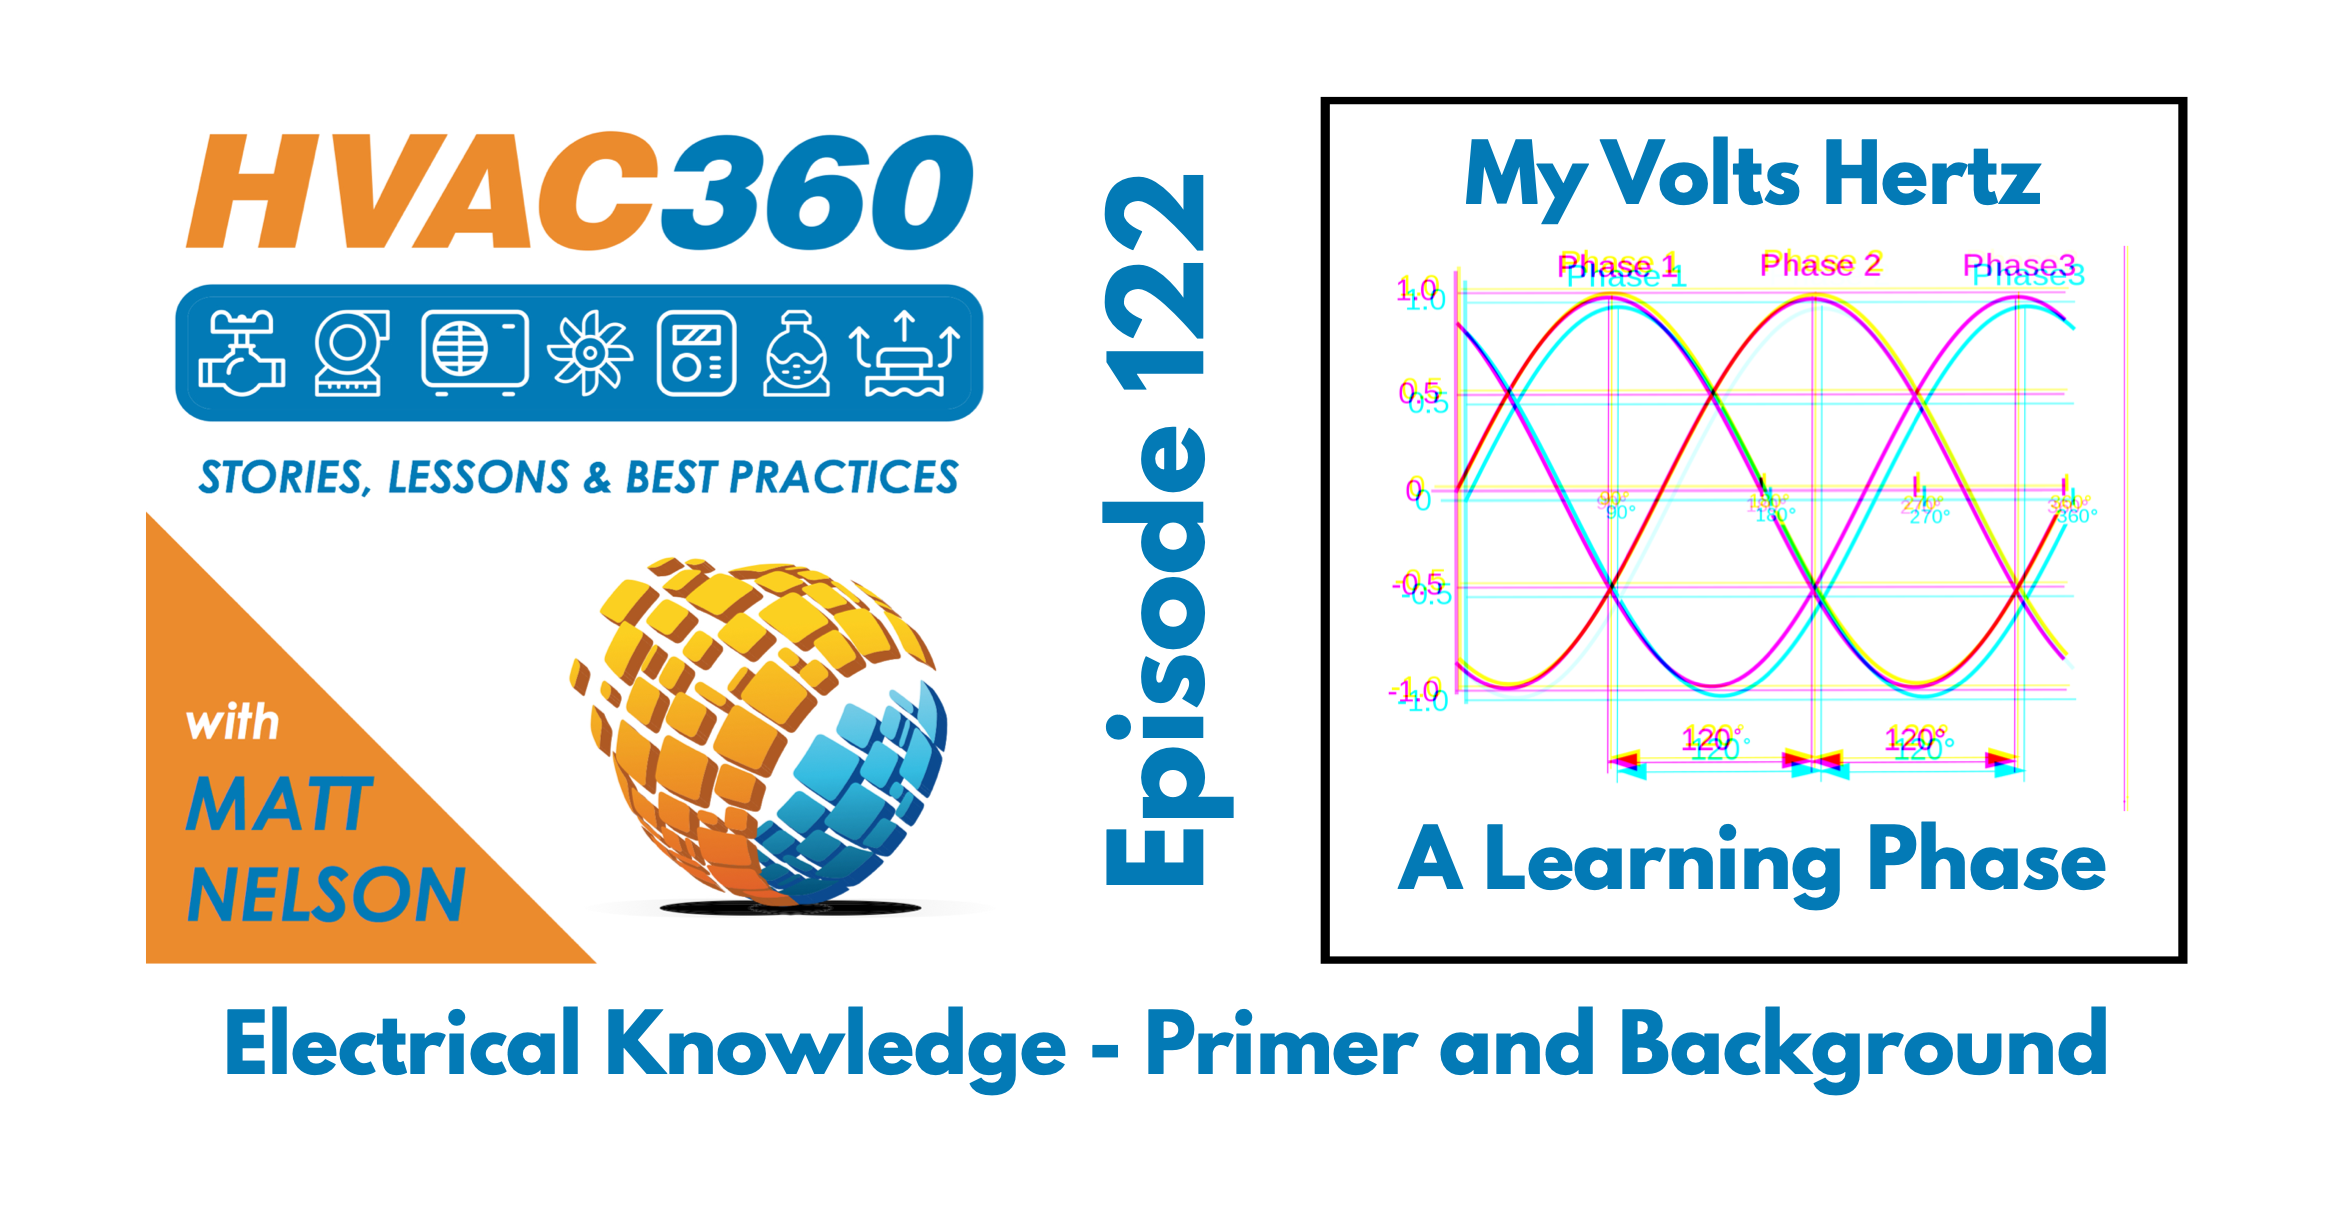 122 - Electrical Knowledge - Primer and Background.png